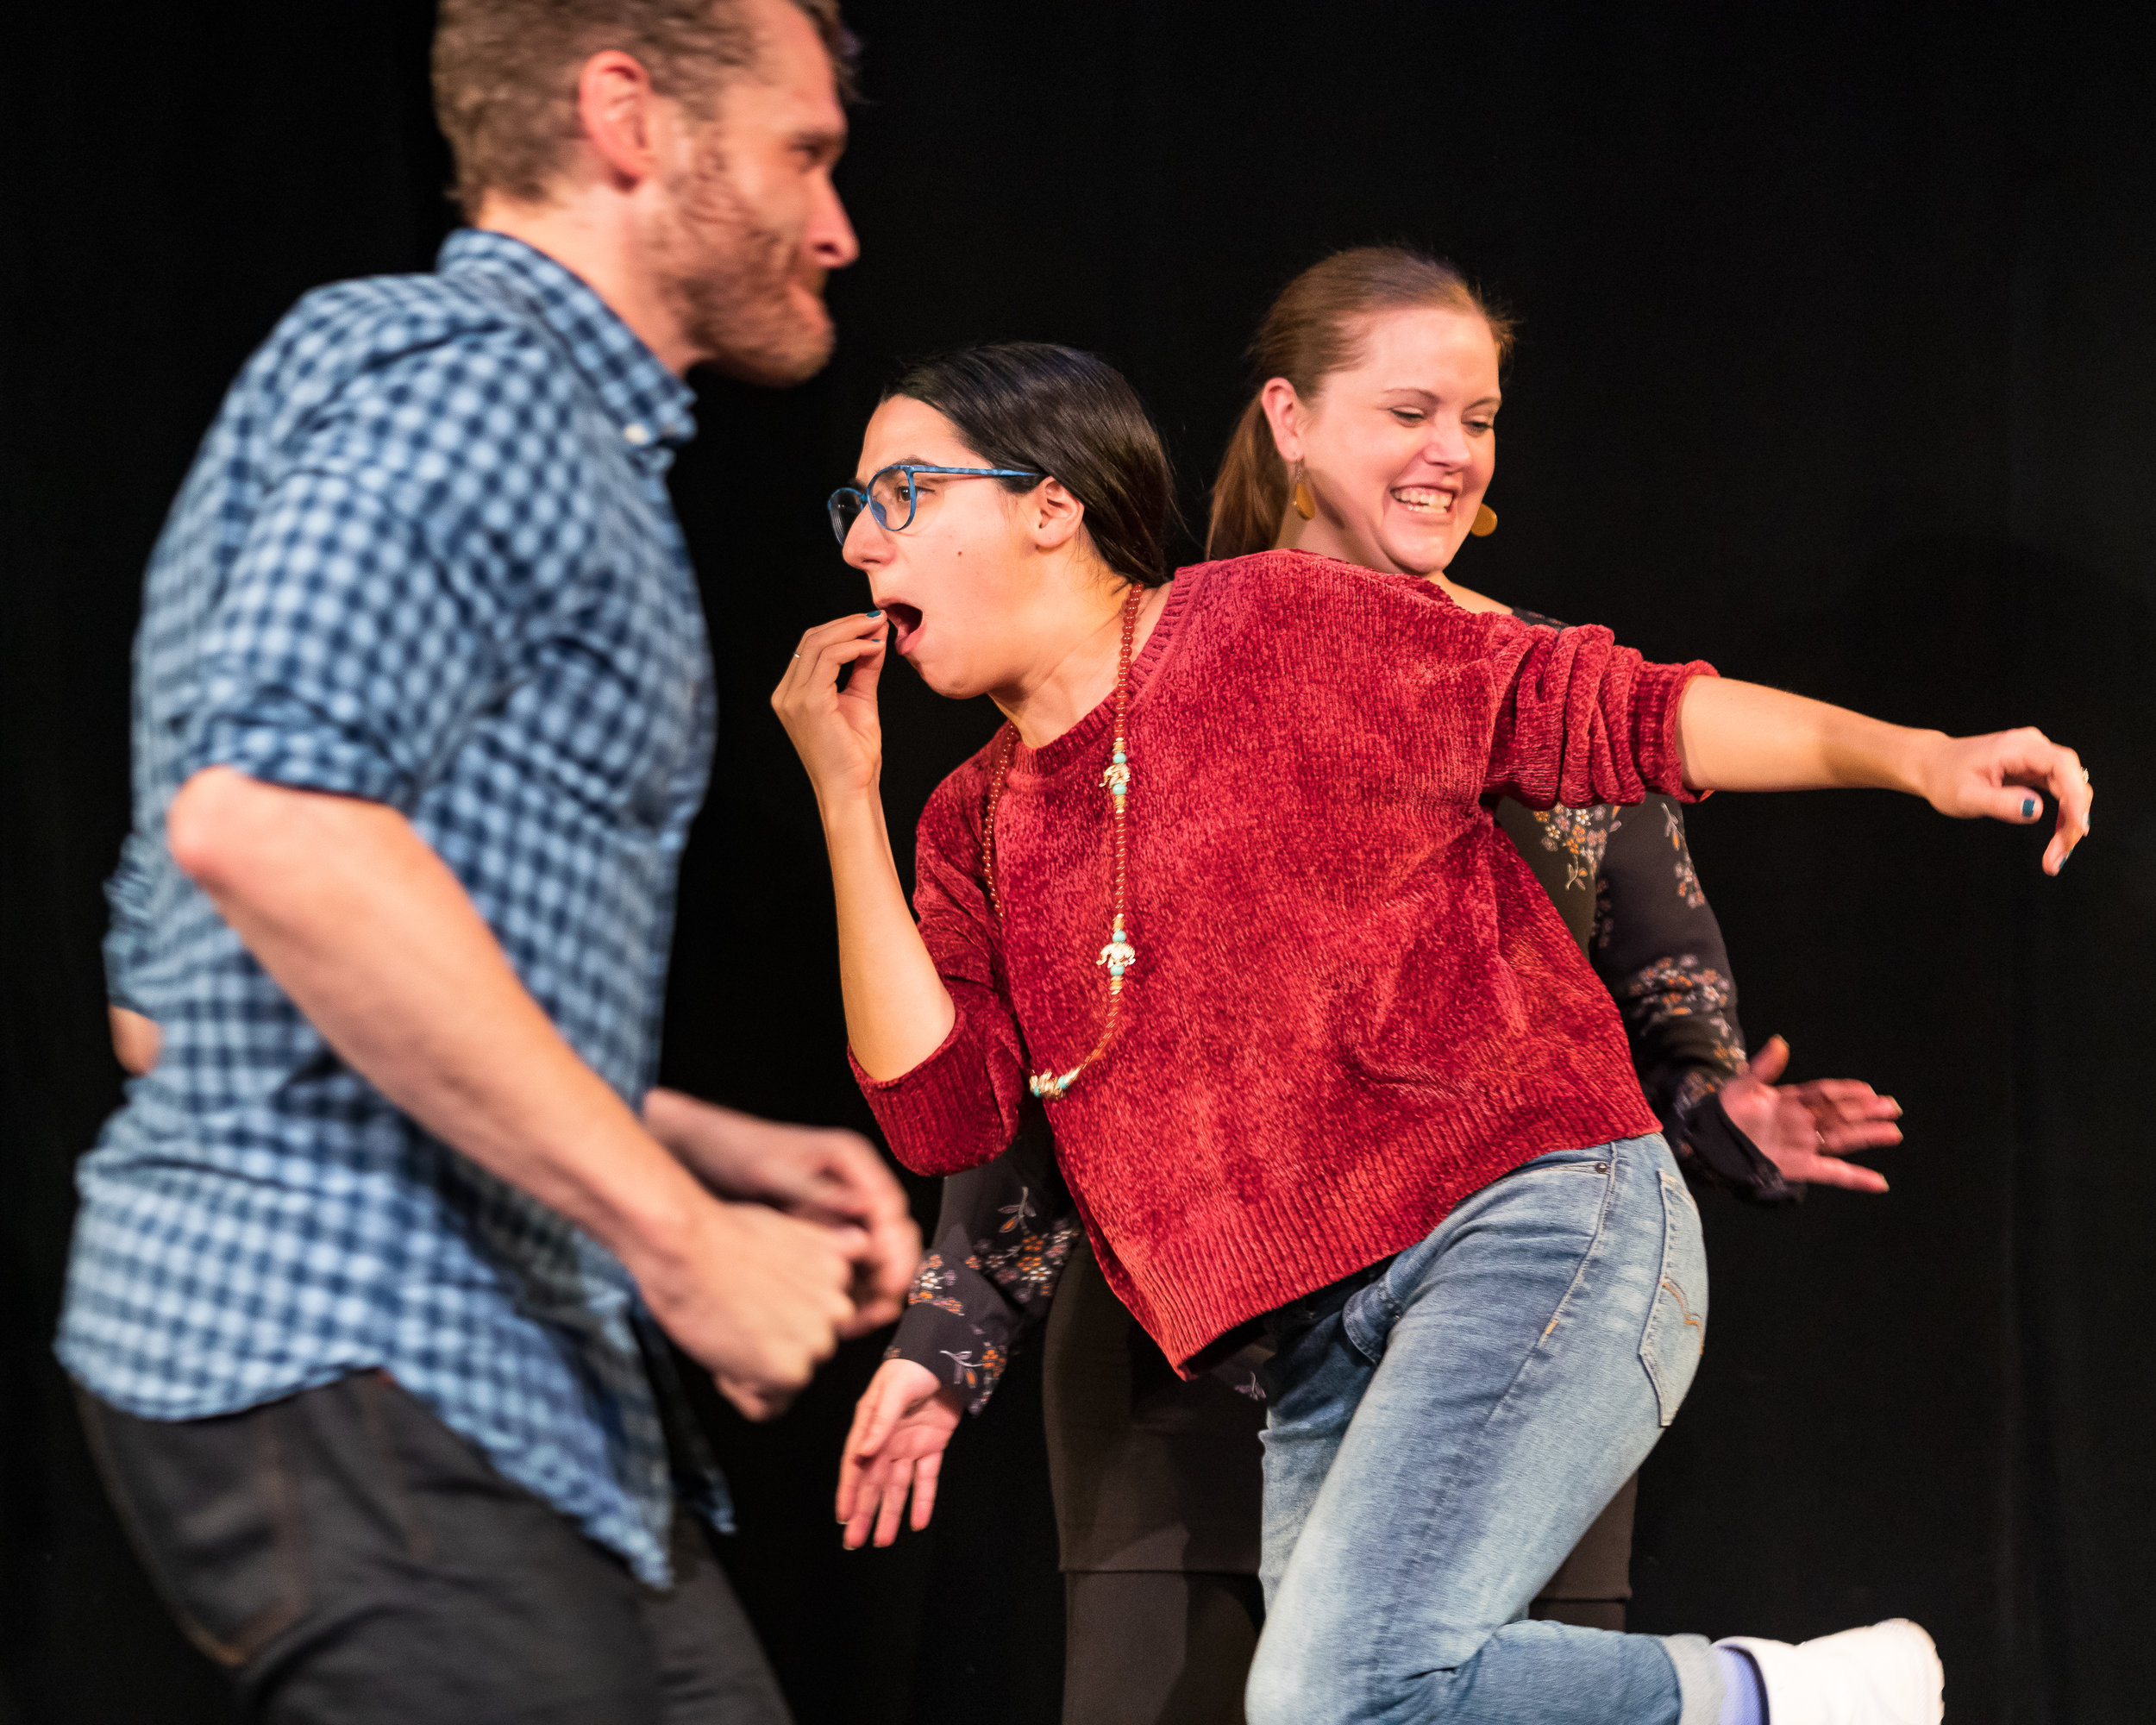 The ImprActivists presented an improv comedy set around a shared Sufi-Jewish mystical tale (told about a Middle Eastern Sufi master in the 9th-13th century and retold almost verbatim about a European Hasidic master in the 17th-19th centuries).